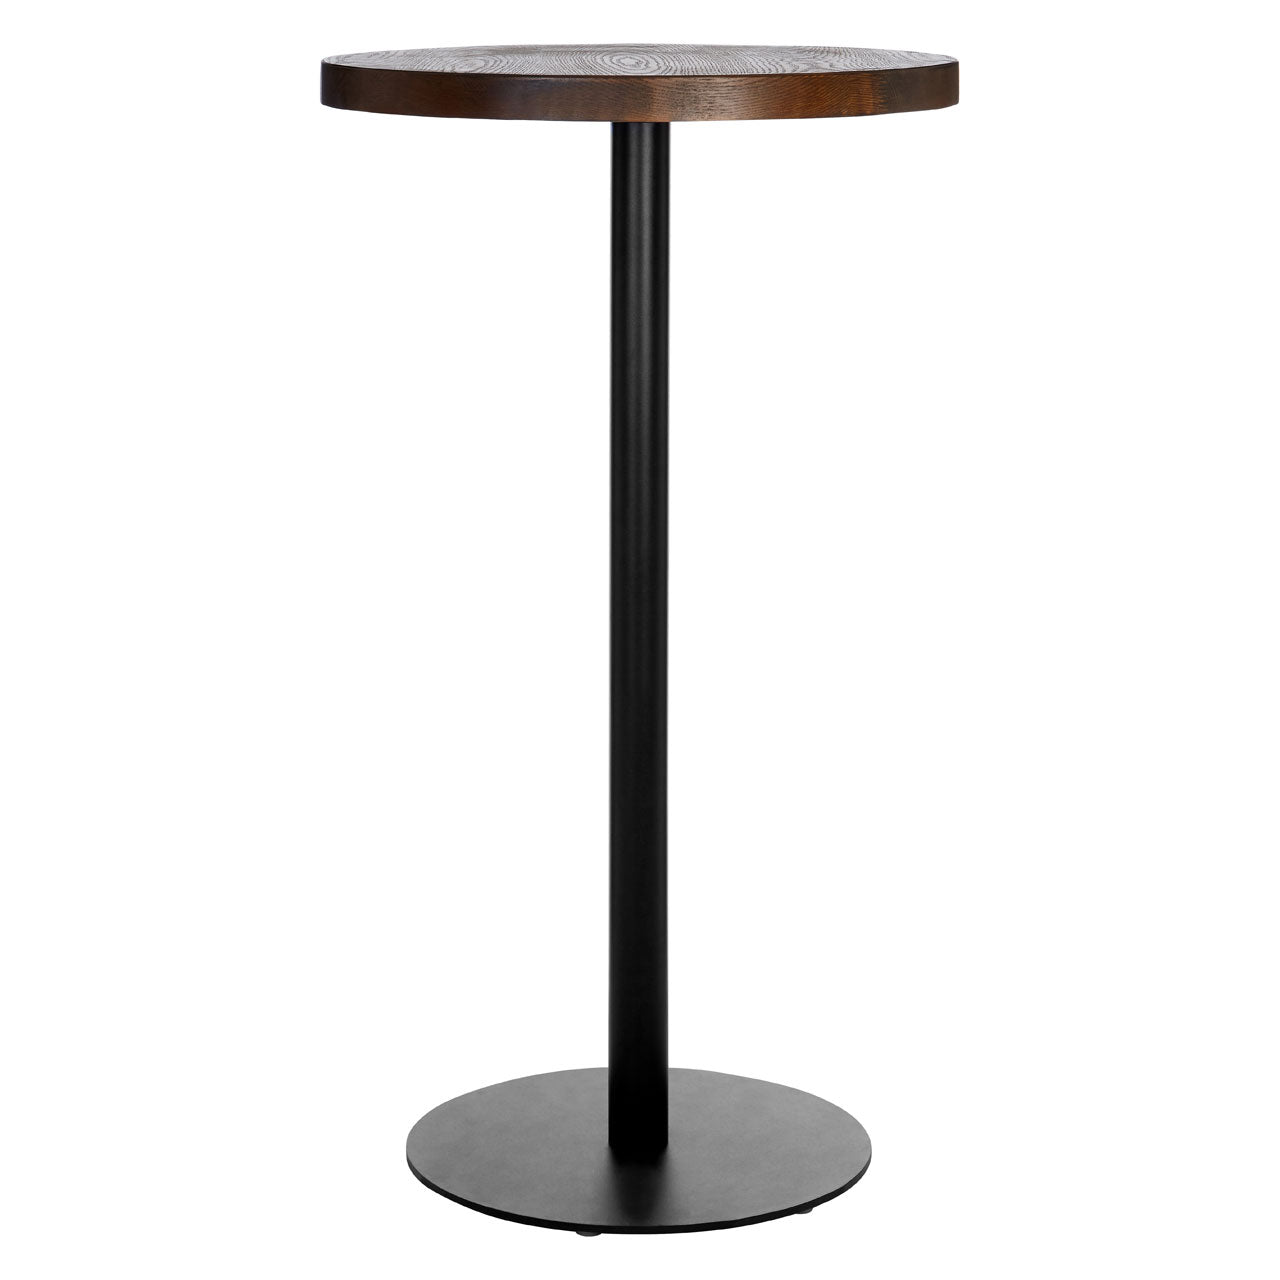 Dalston Walnut Rubberwood Table - Ezzo